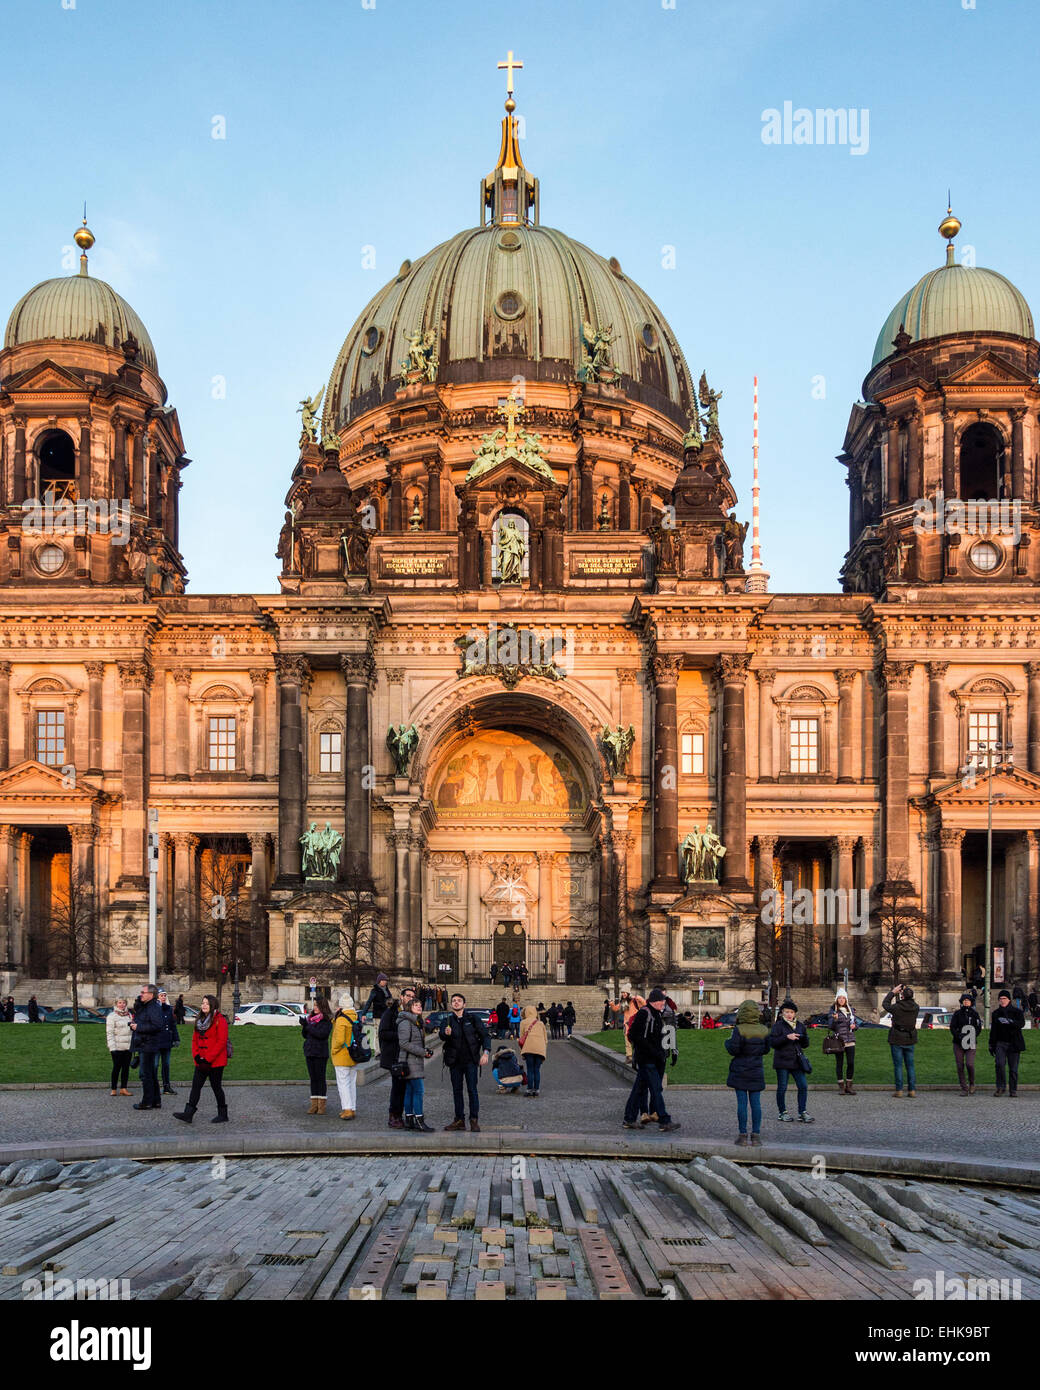 Berliner Dom, Berlin Dome, Green Dome of Baroque Protestant Cathedral on Museum Island, Museuminsel, Am Lustgarten, Stock Photo